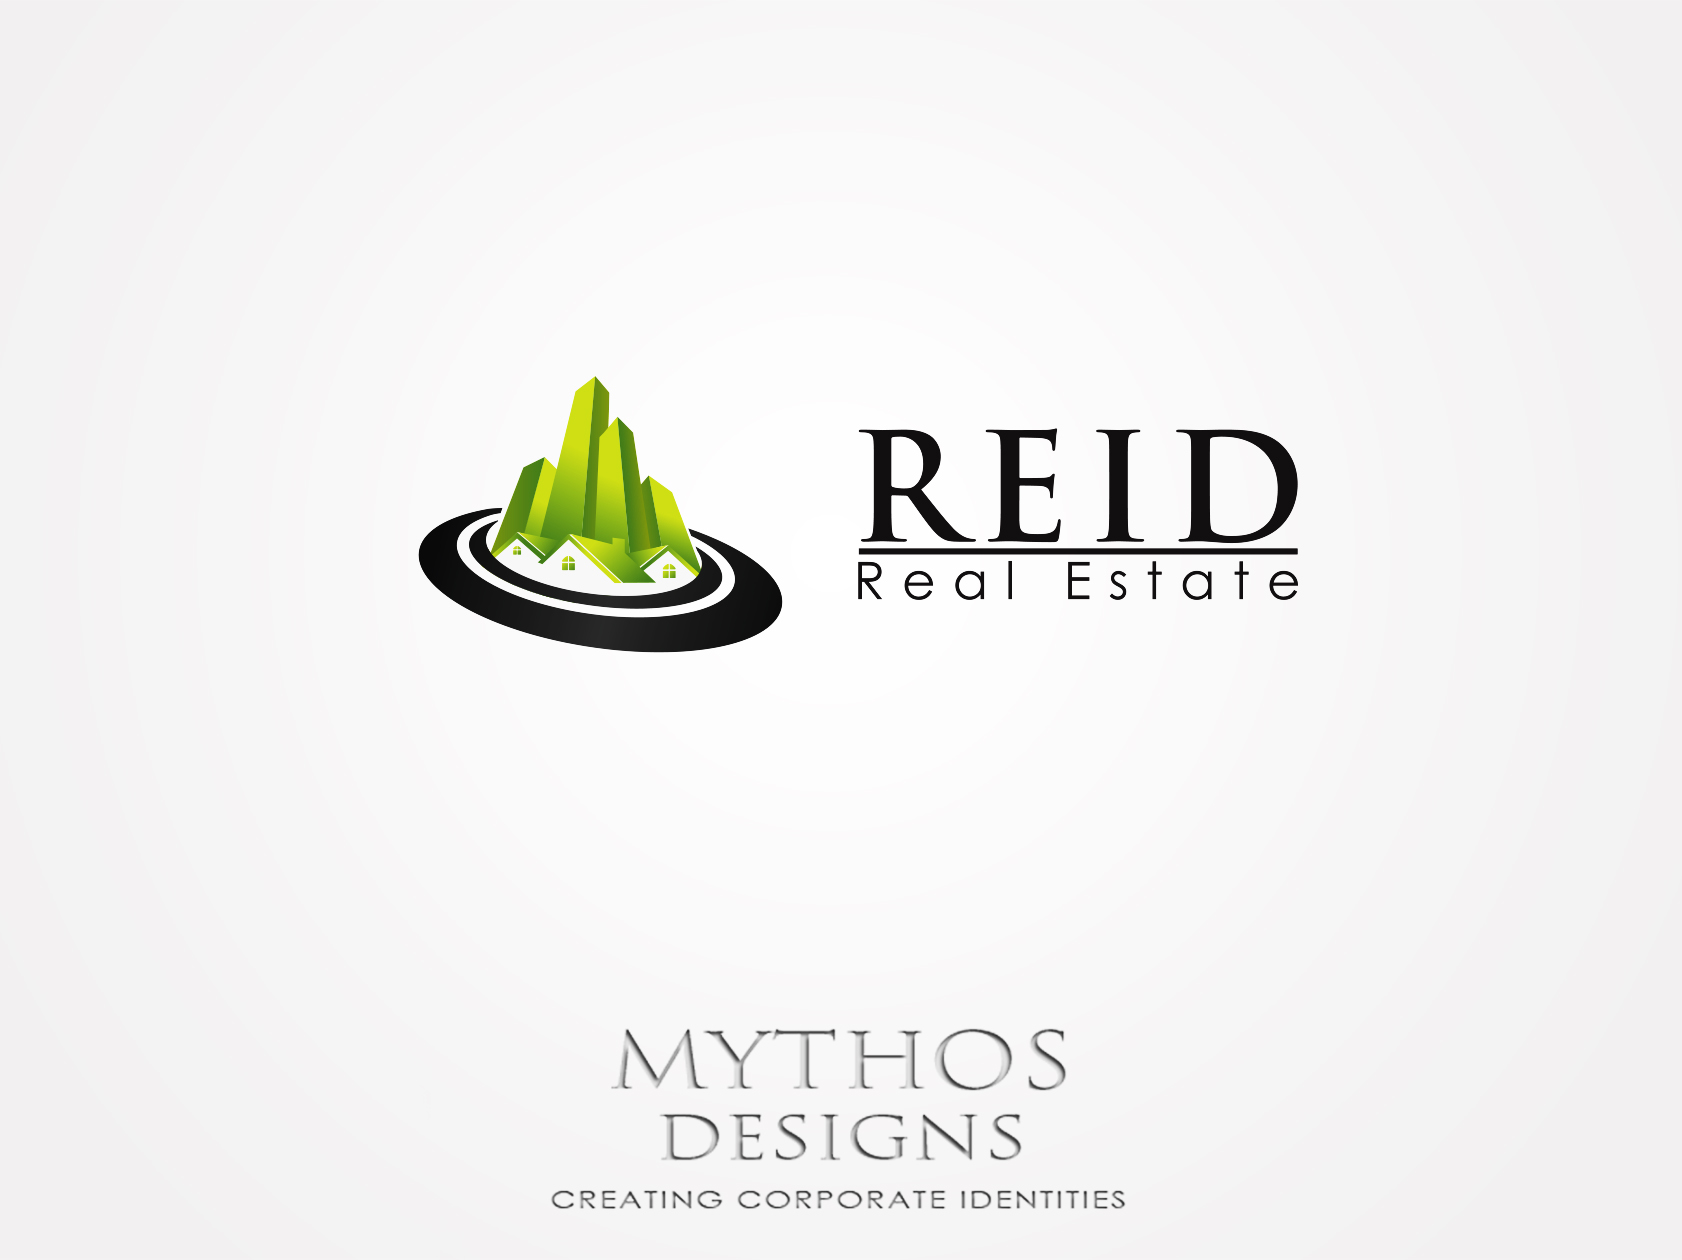 Logo Design by Mythos Designs - Entry No. 14 in the Logo Design Contest Artistic Logo Design for Hadden Properties.